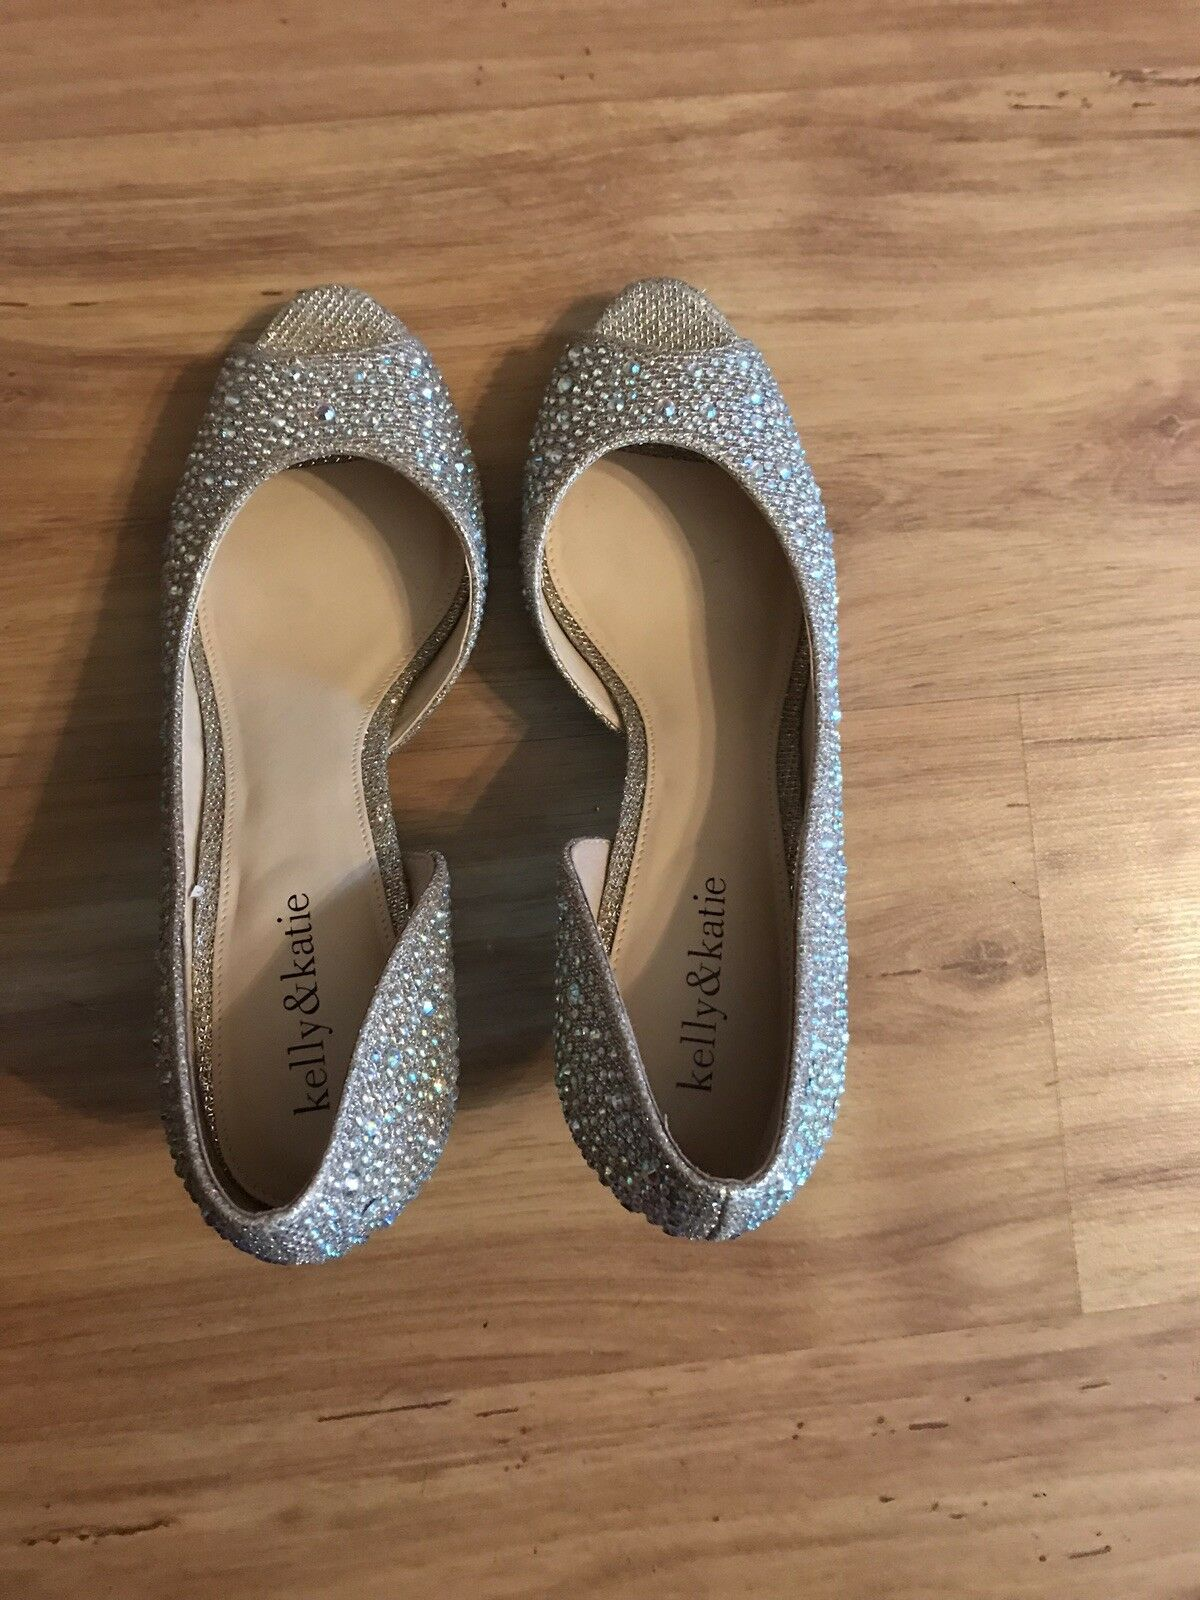 Kelly & Katie Gold High Heel Pumps sparkle Bling size 8.5 Peep Toe shoes